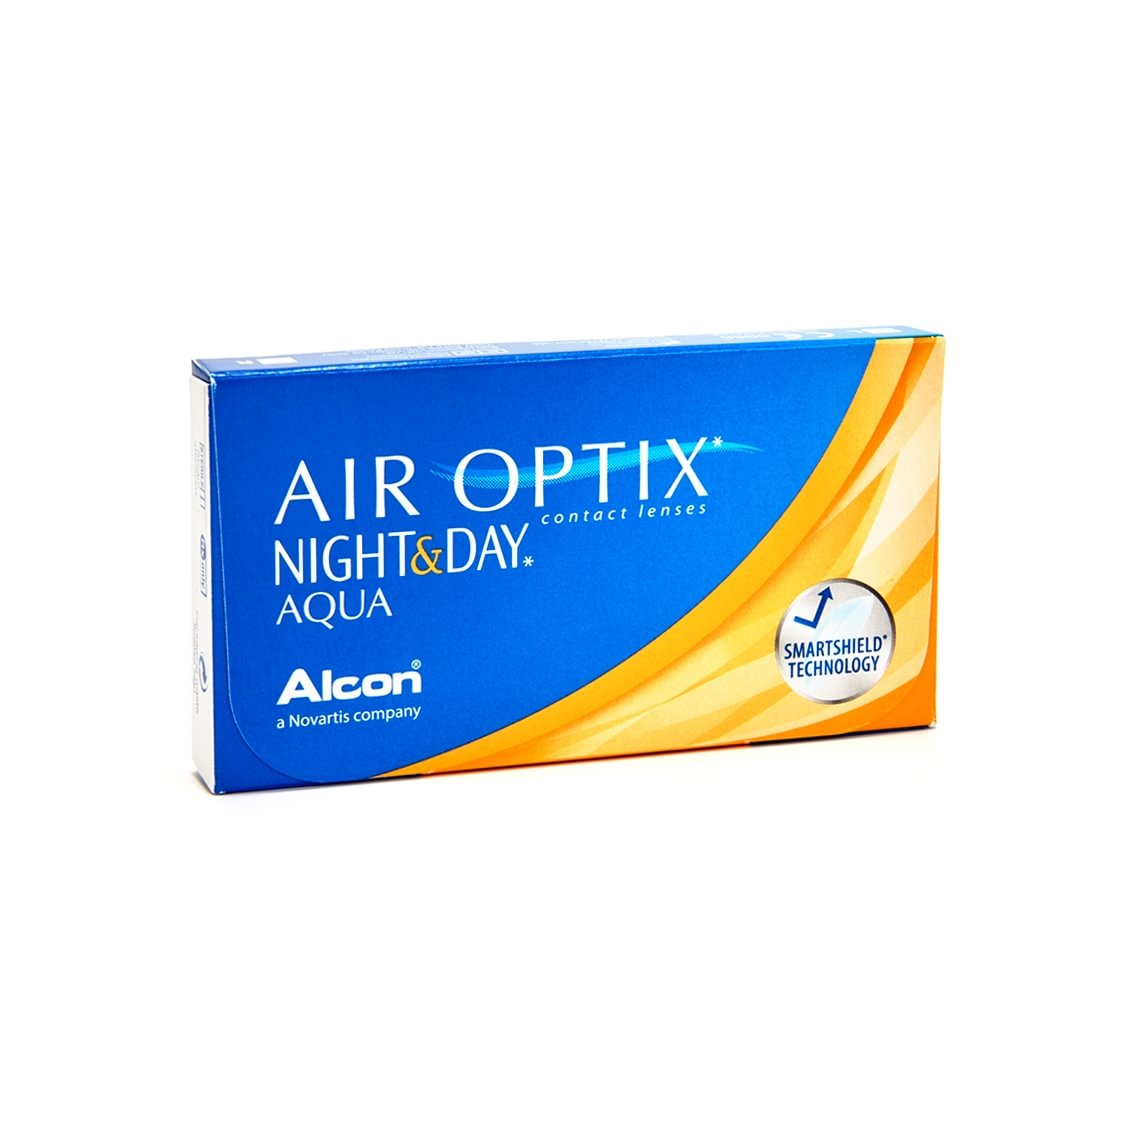 Air Optix Night&Day Aqua 6 st/box